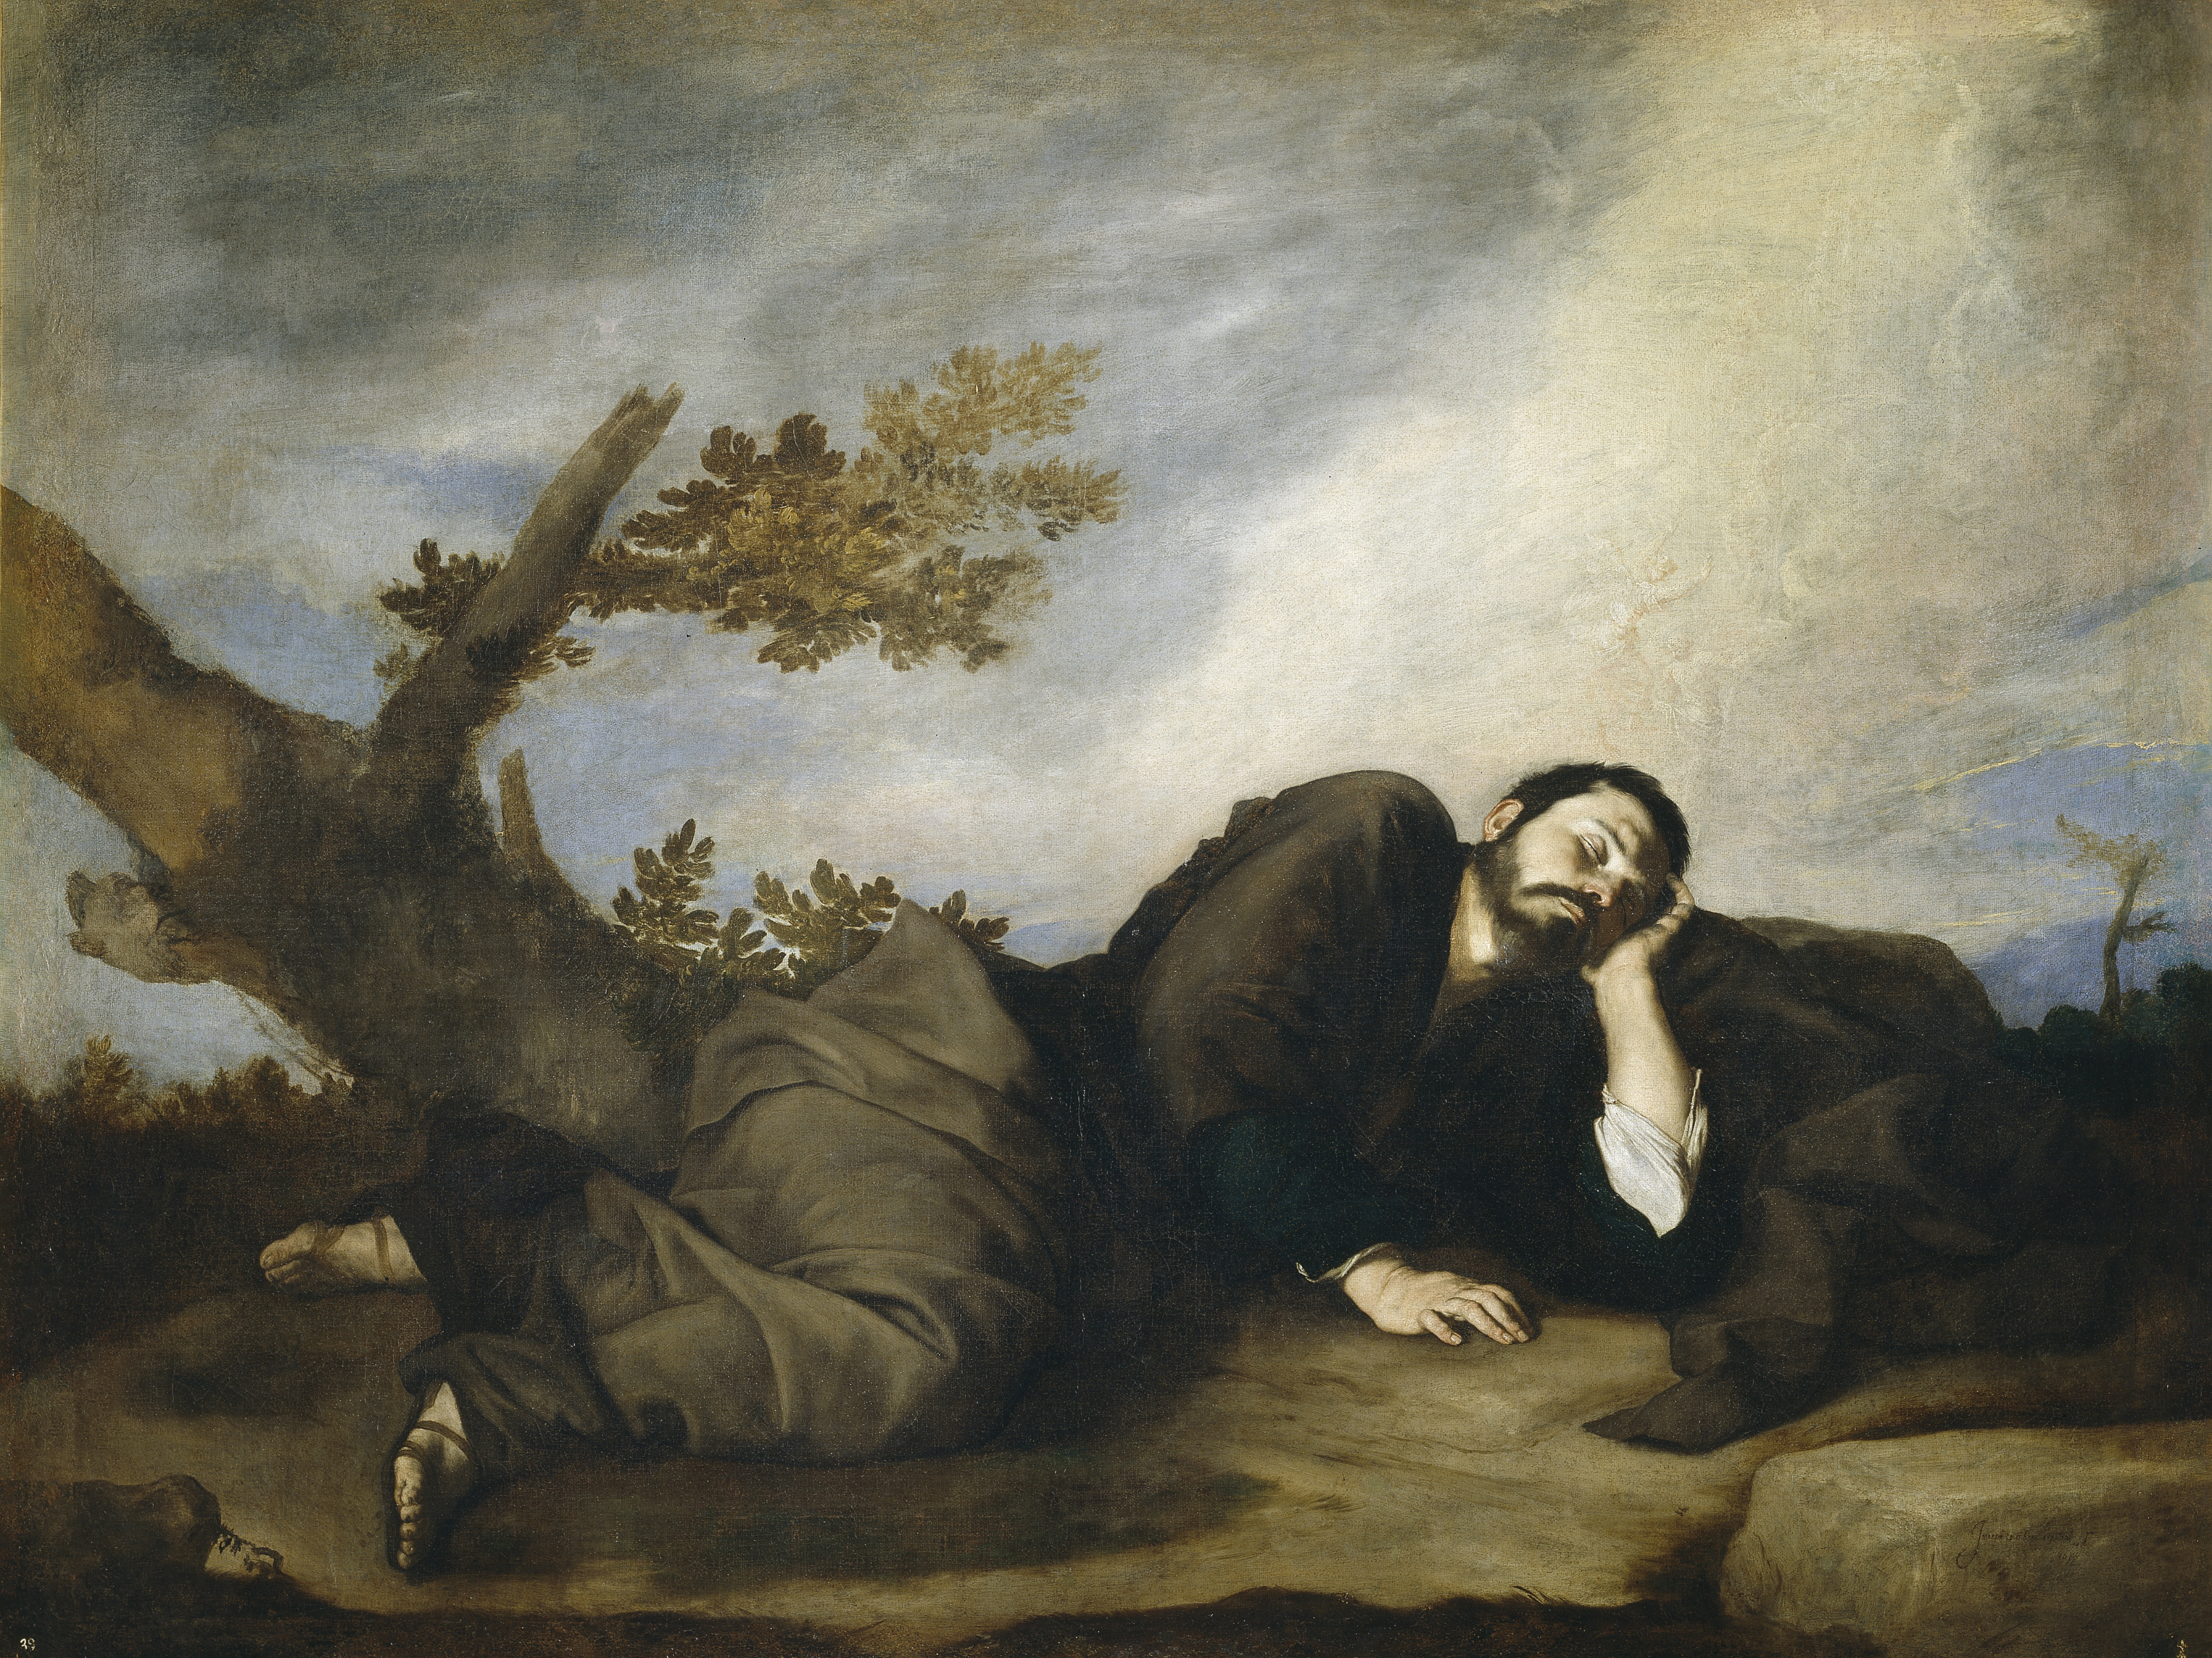 """El sueño de Jacob,"" by José de Ribera [Public domain], via Wikimedia Commons"